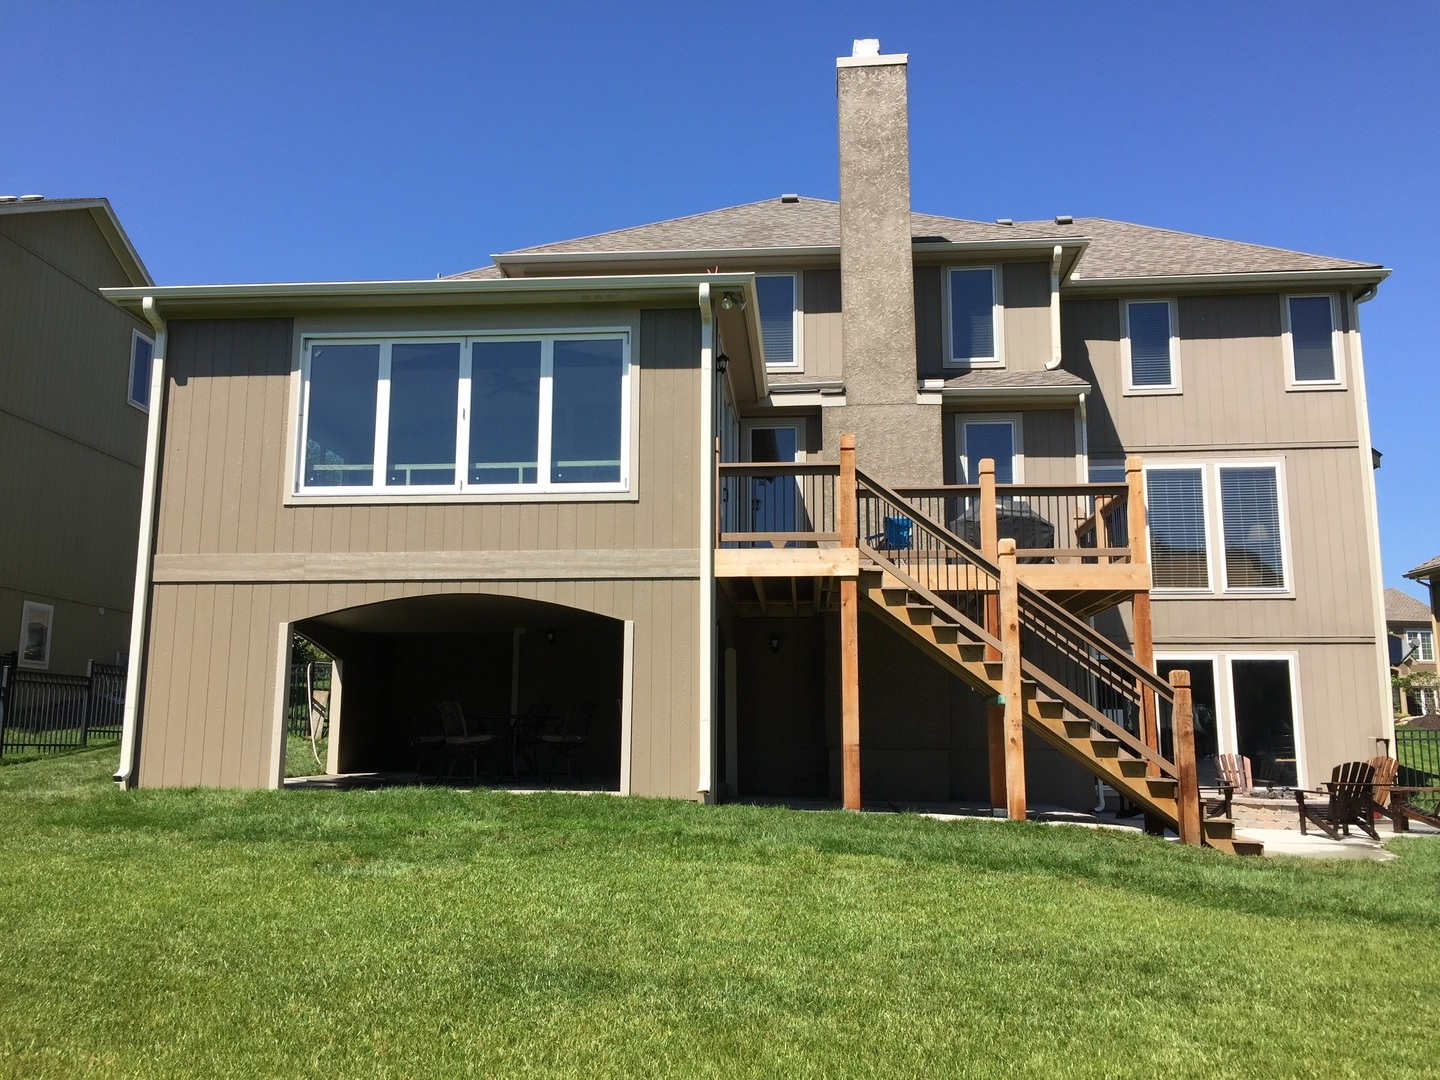 whole home remodeling as shown by a new deck and a fourth garage